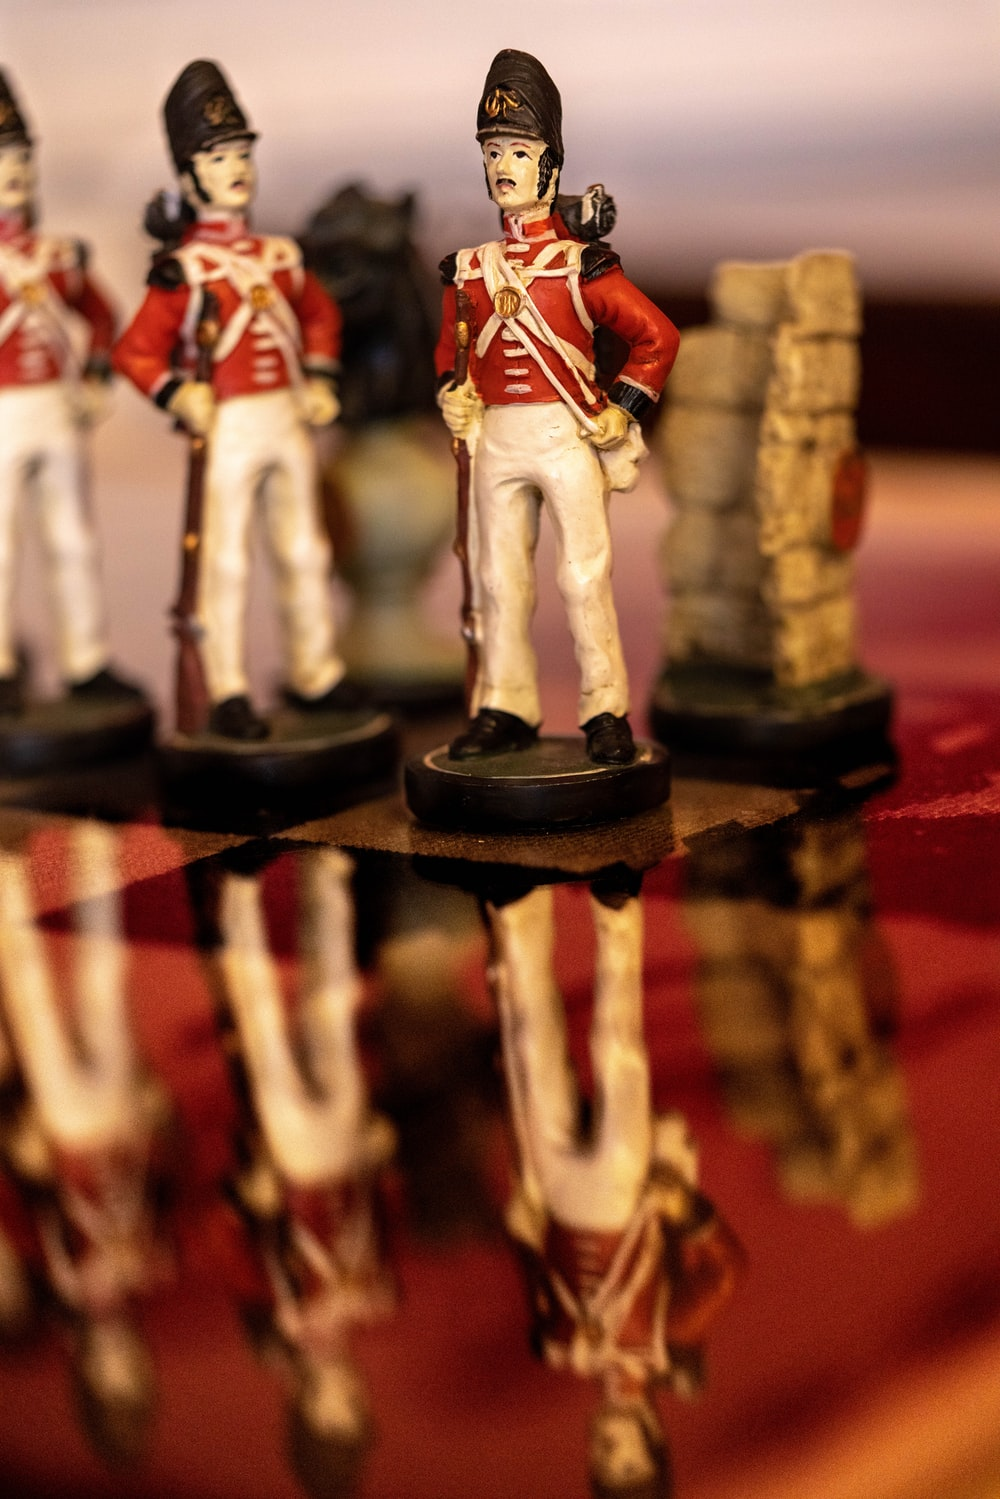 red and white soldier ceramic figurines